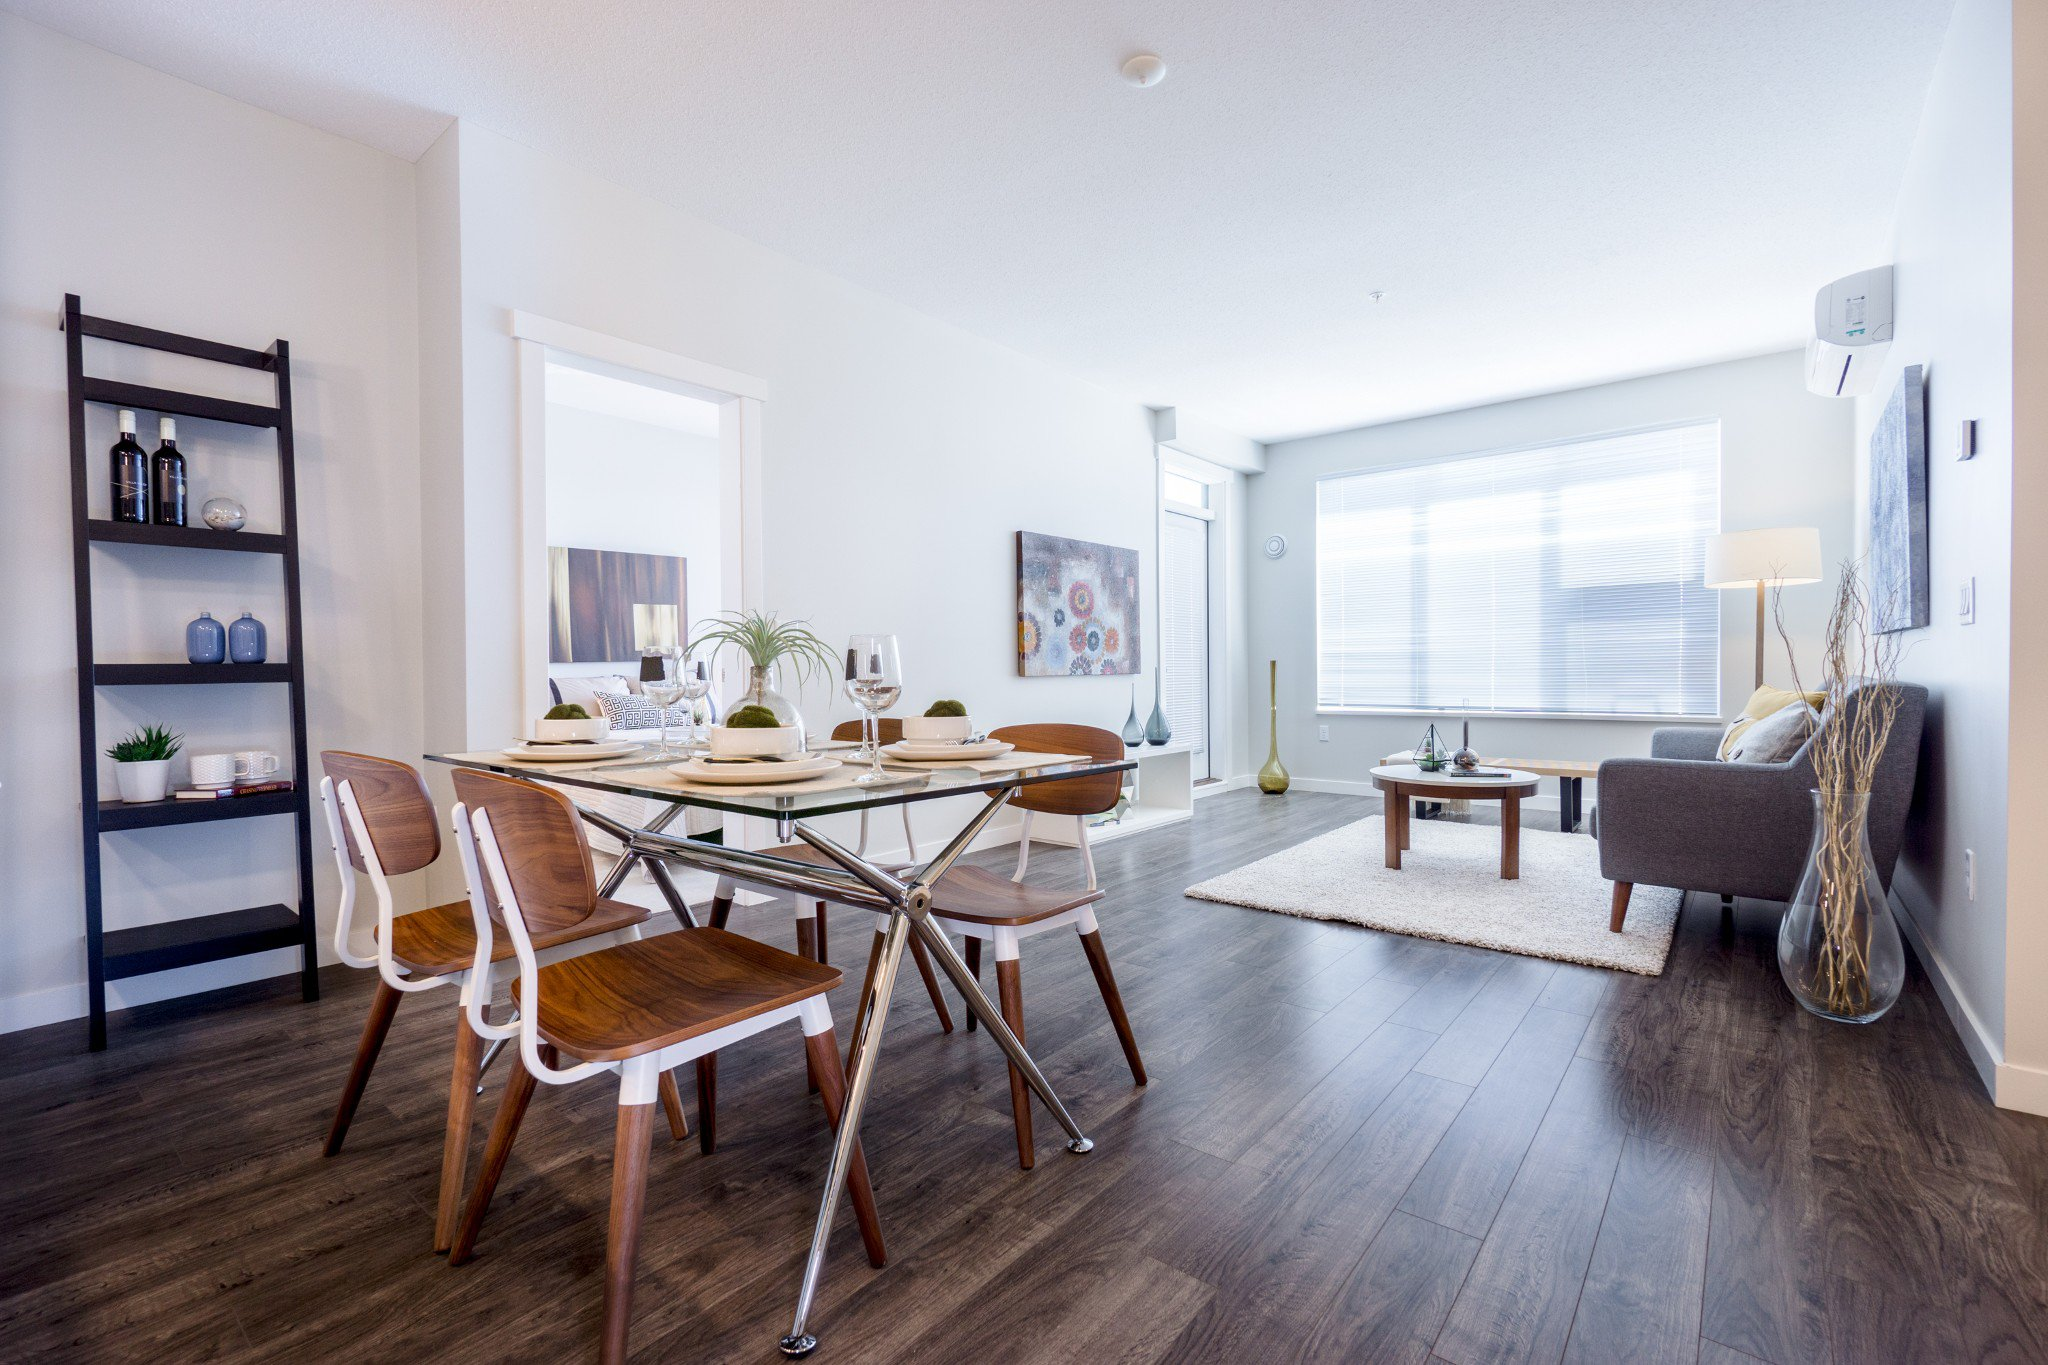 """Photo 11: Photos: 402 9311 ALEXANDRA Road in Richmond: West Cambie Condo for sale in """"ALEXANDRA COURT"""" : MLS®# R2266613"""